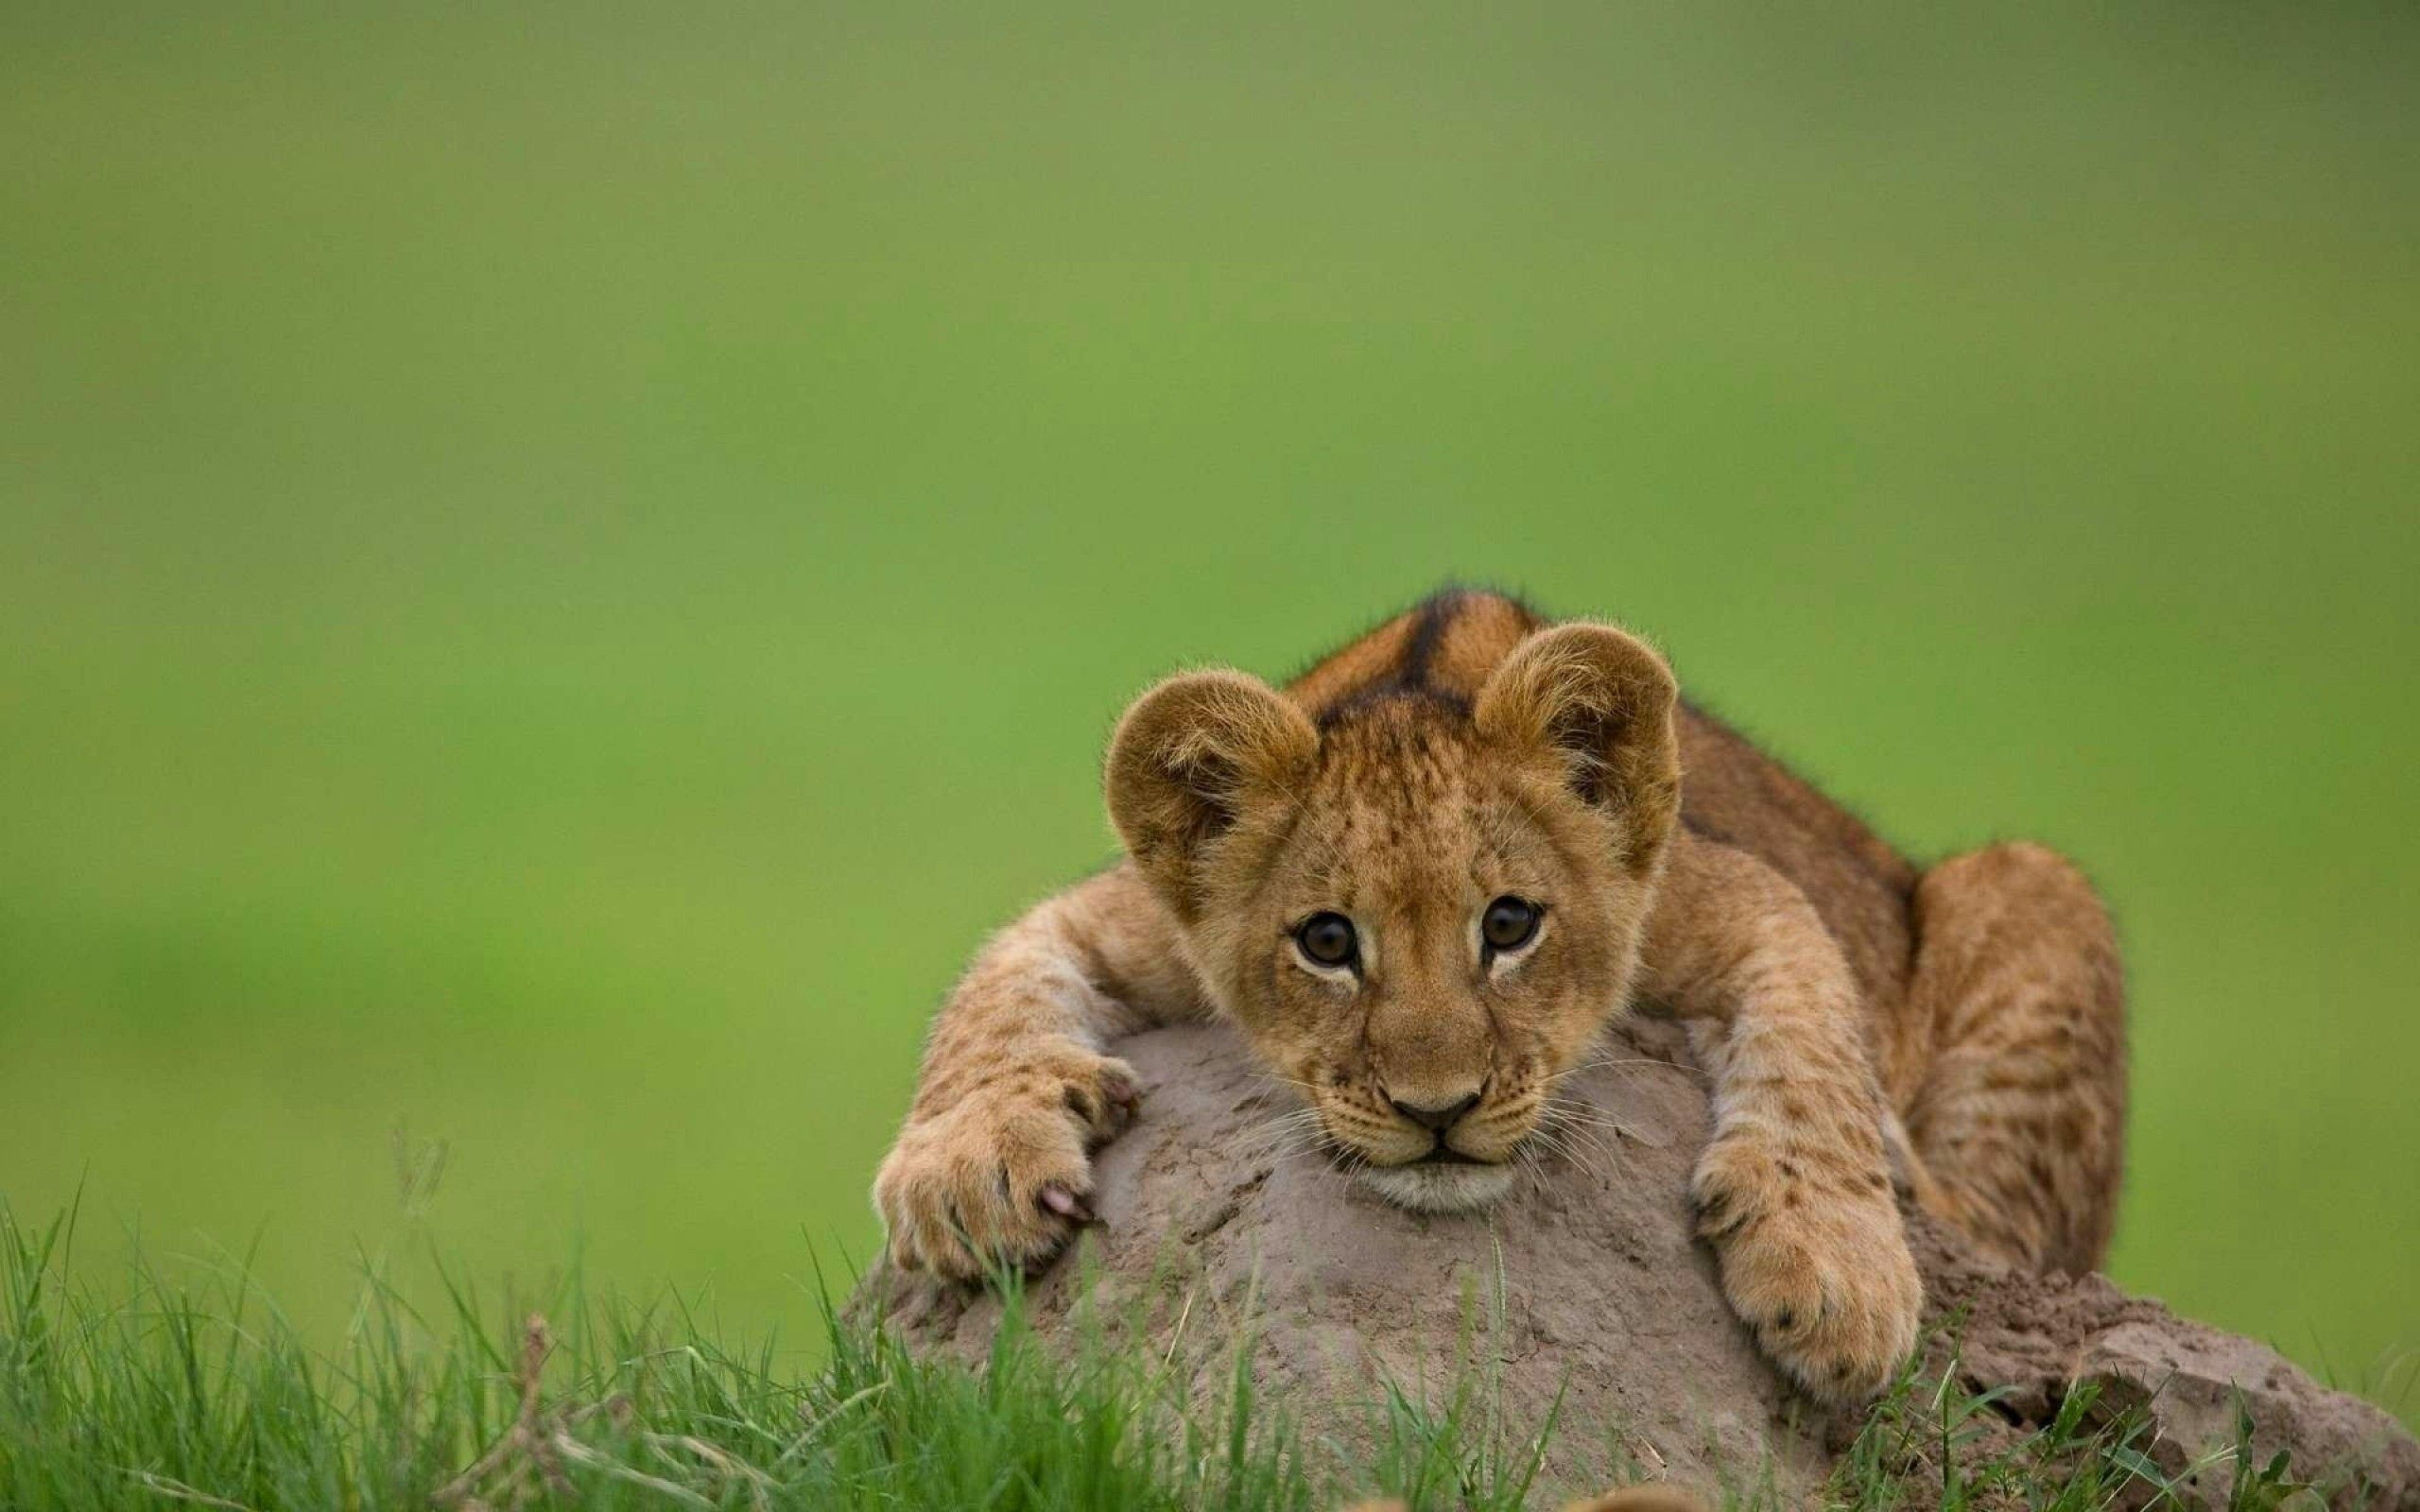 118621 download wallpaper Animals, Lion Cub, Lion, Young, Joey, Rock, Stone, To Lie Down, Lie screensavers and pictures for free